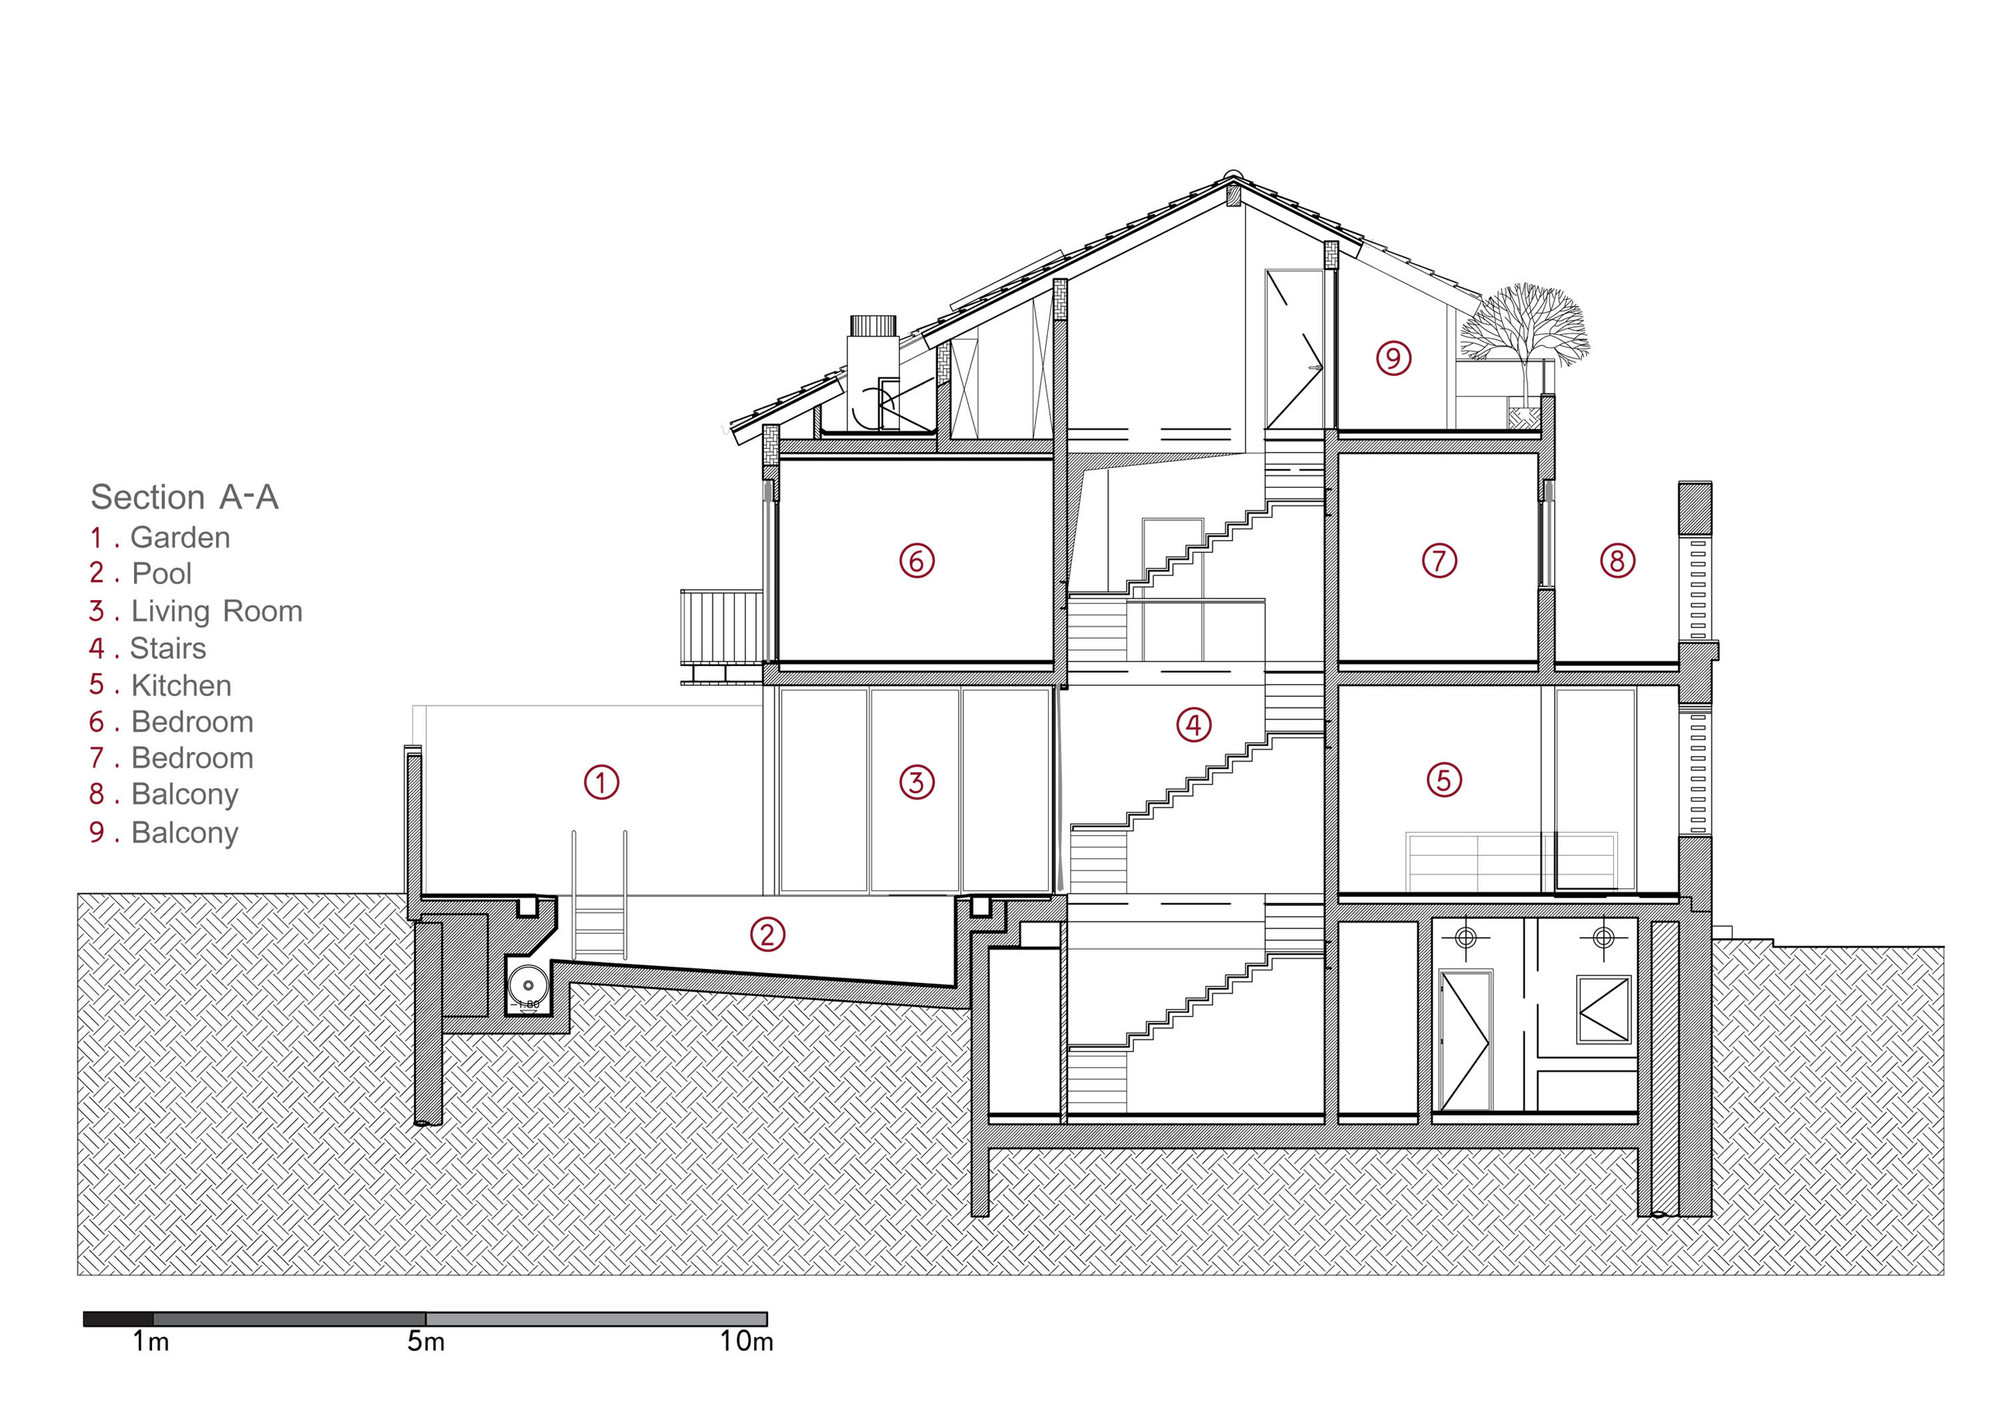 V House Paz Gersh Architects Section Aa